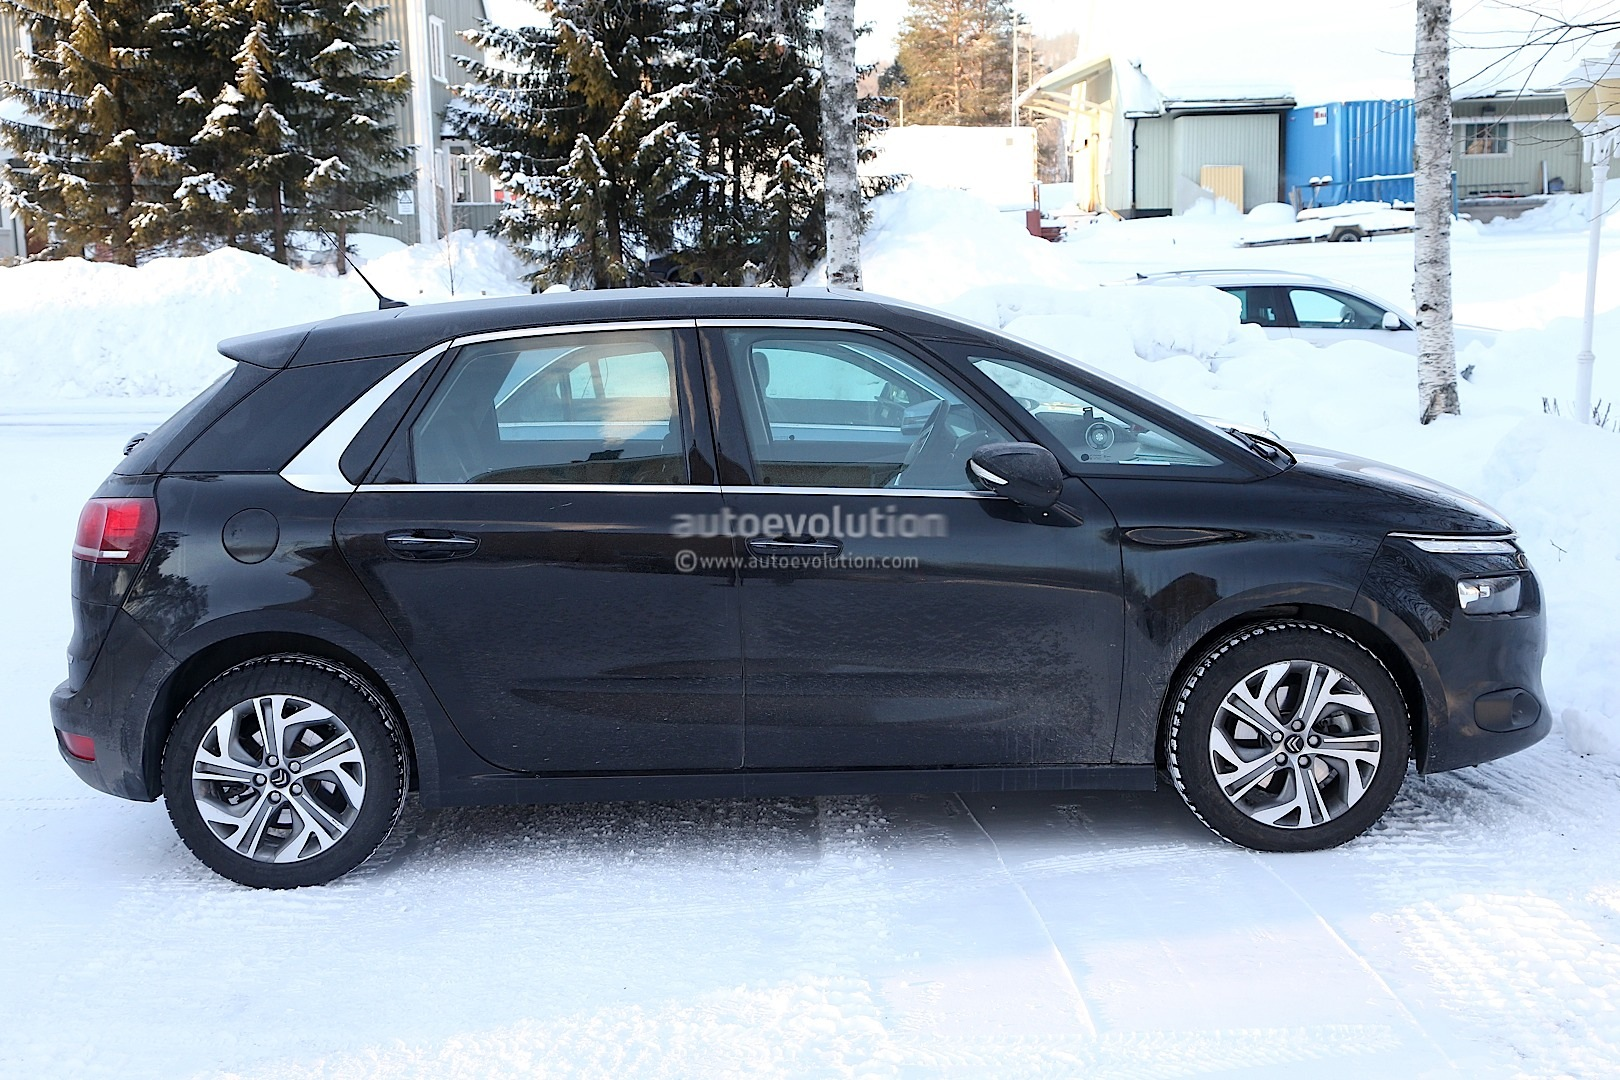 Spyshots: 2014 Citroen C4 Picasso Interior Revealed - autoevolution